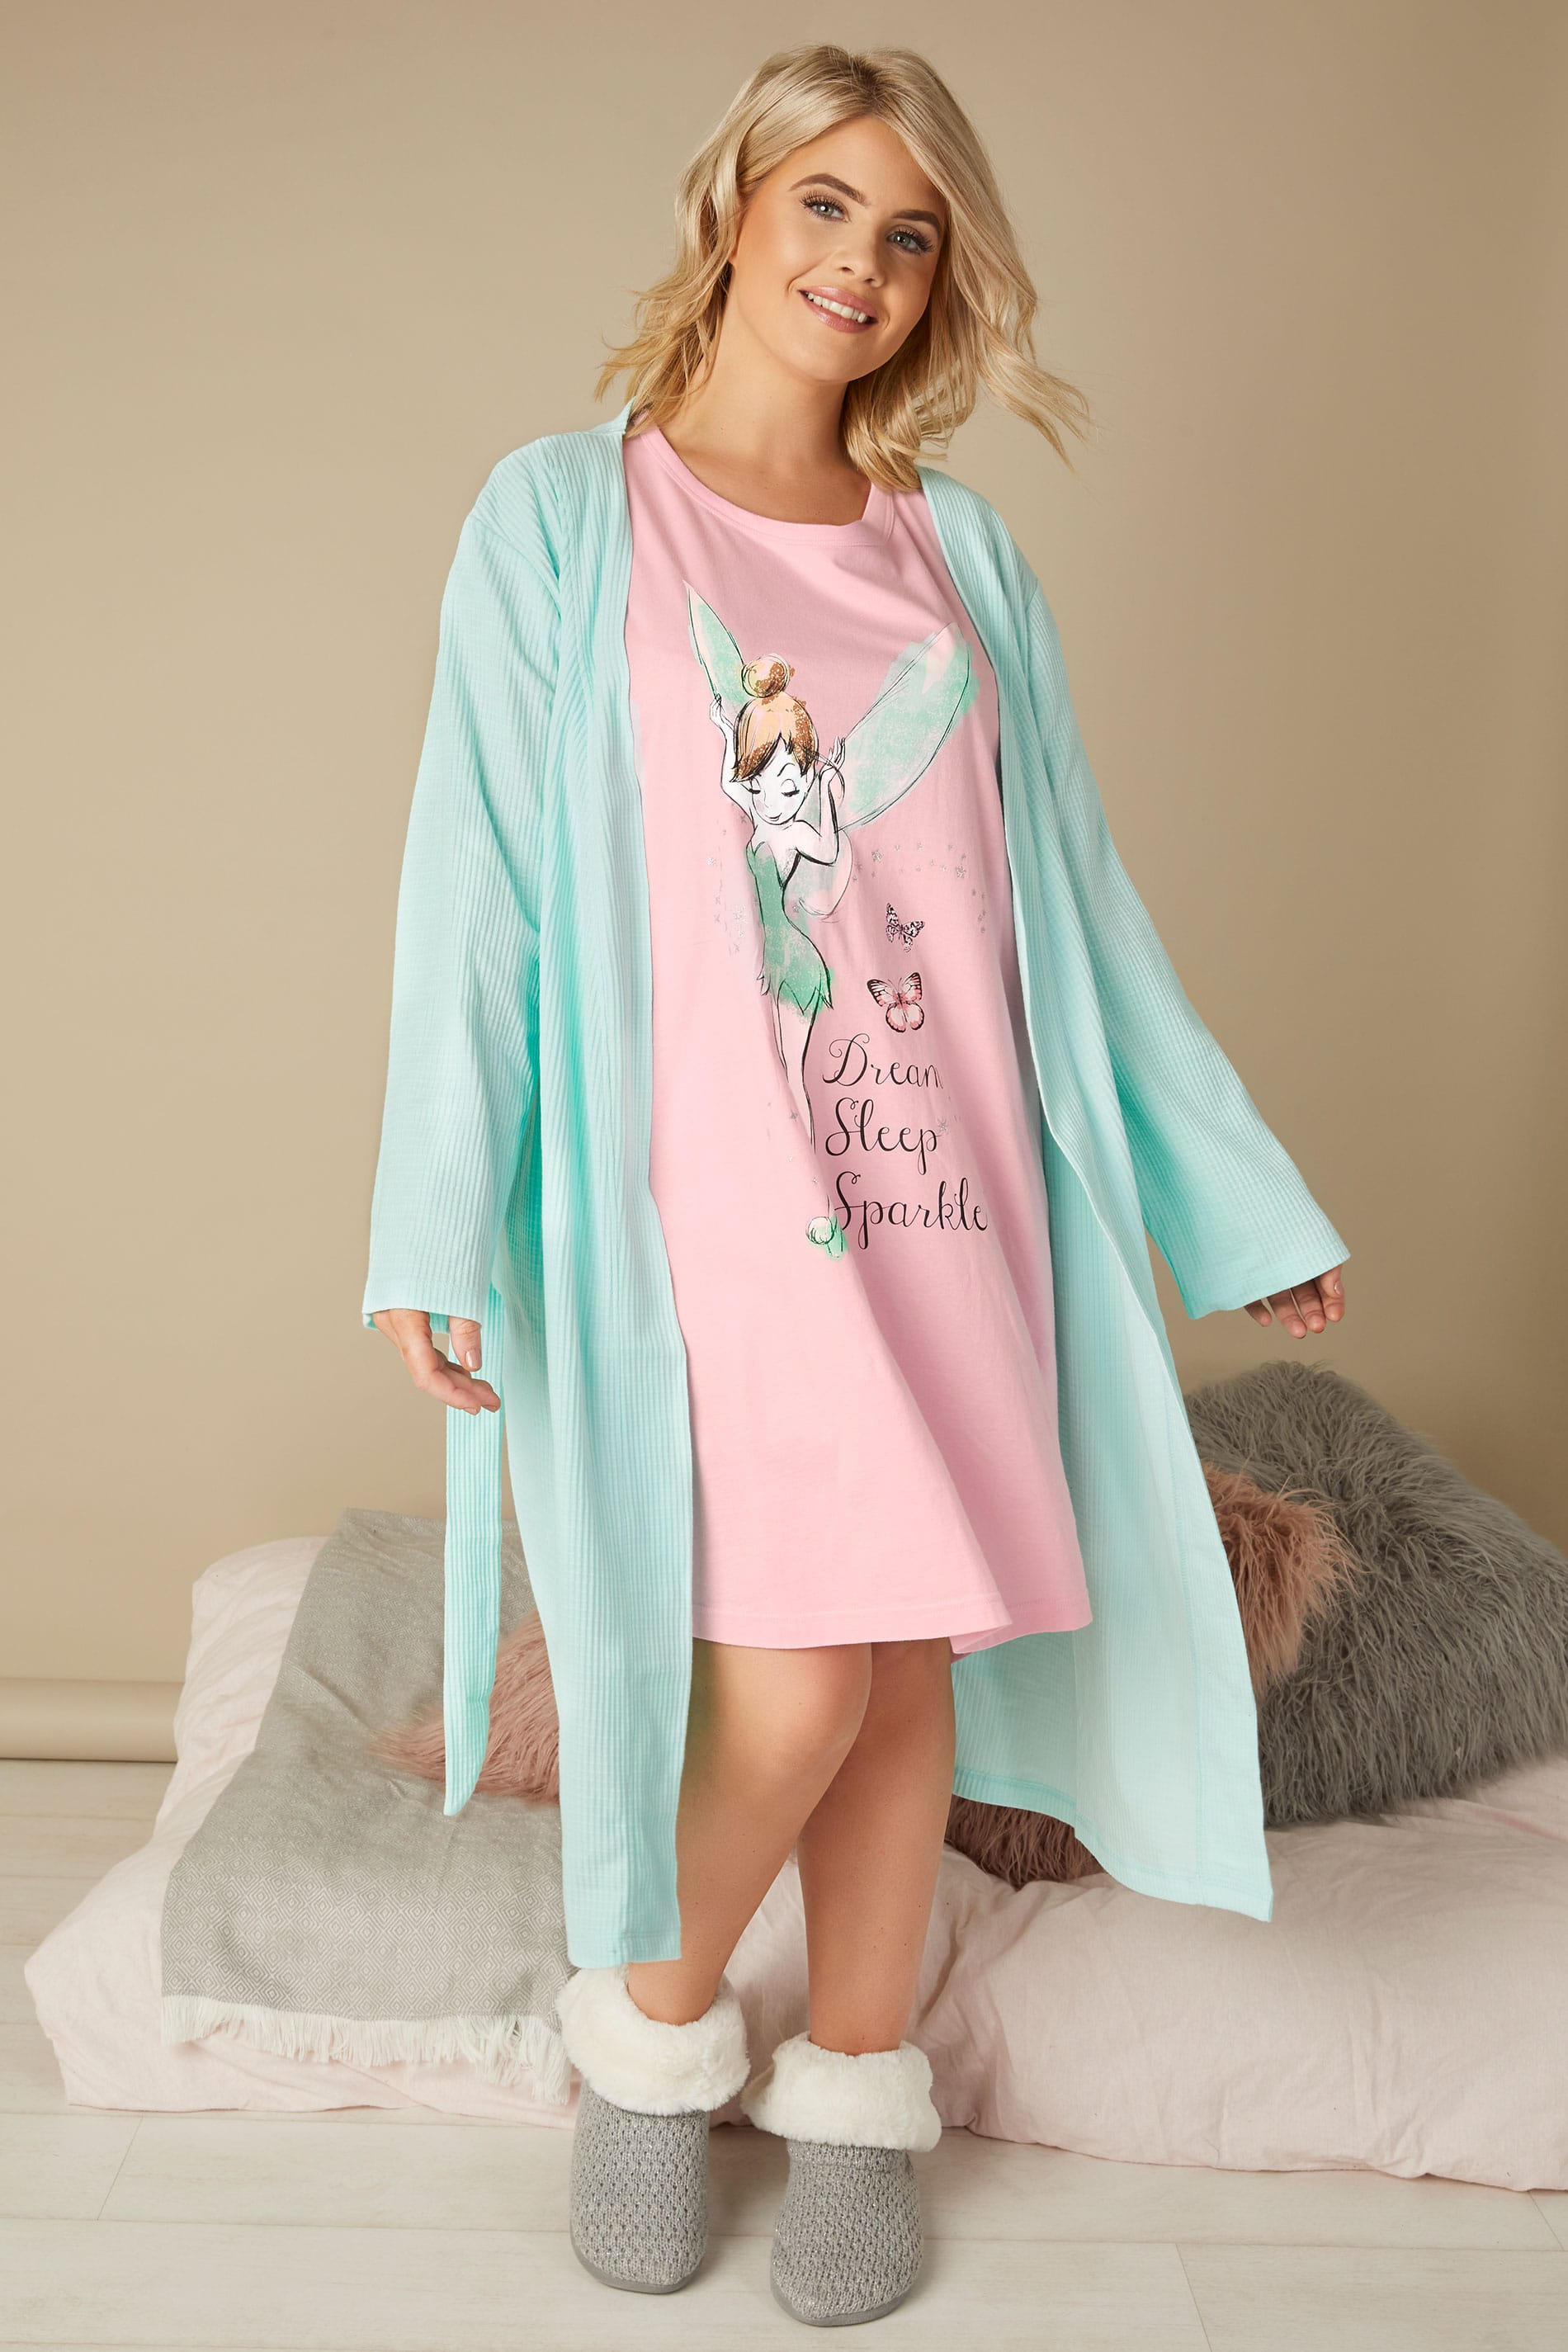 Pink disney tinkerbell 39 dream sleep sparkle 39 print for Sites like touch of modern